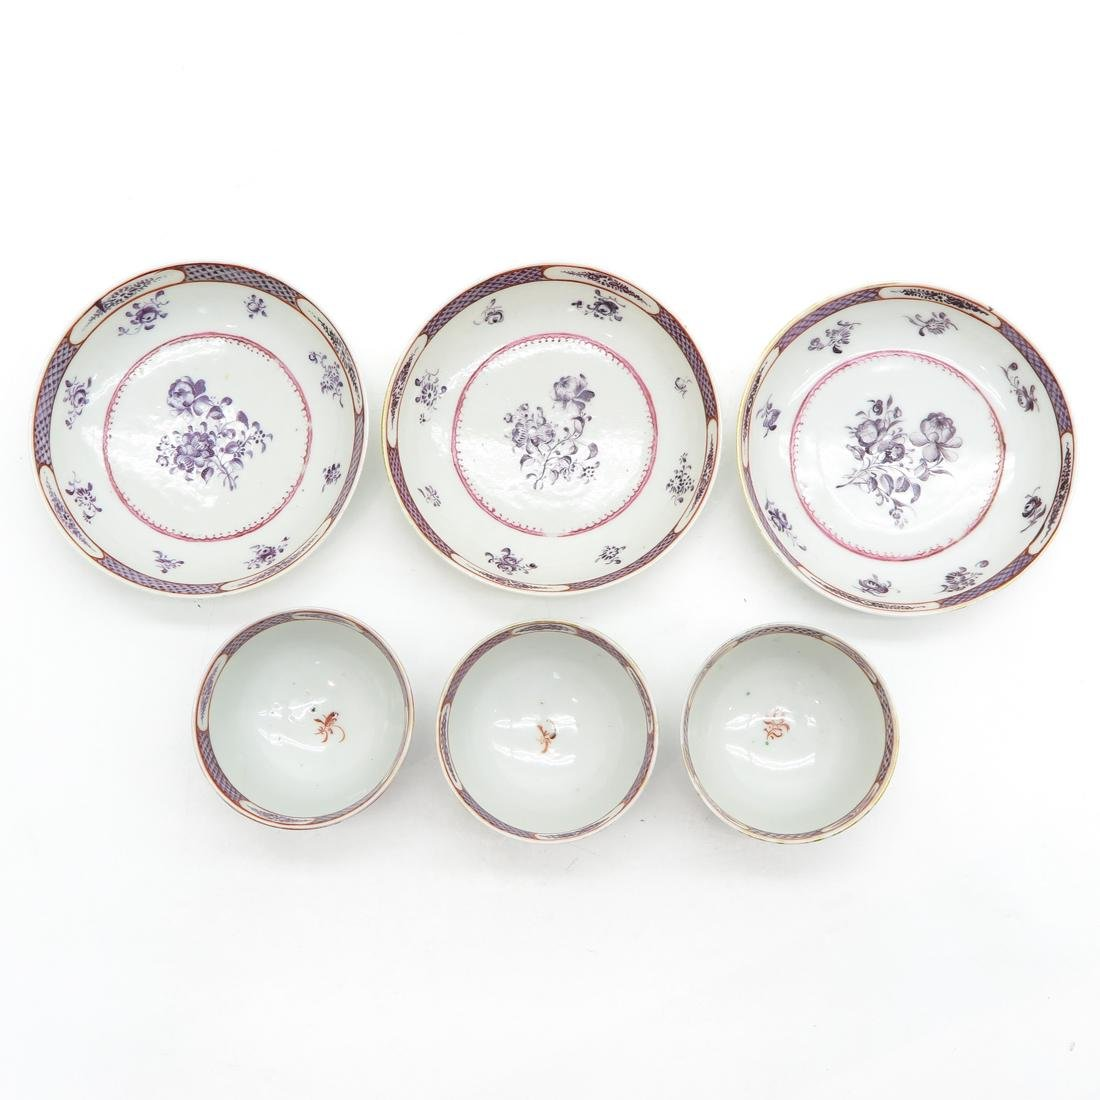 Lot of 3 Cups and Saucers - 5